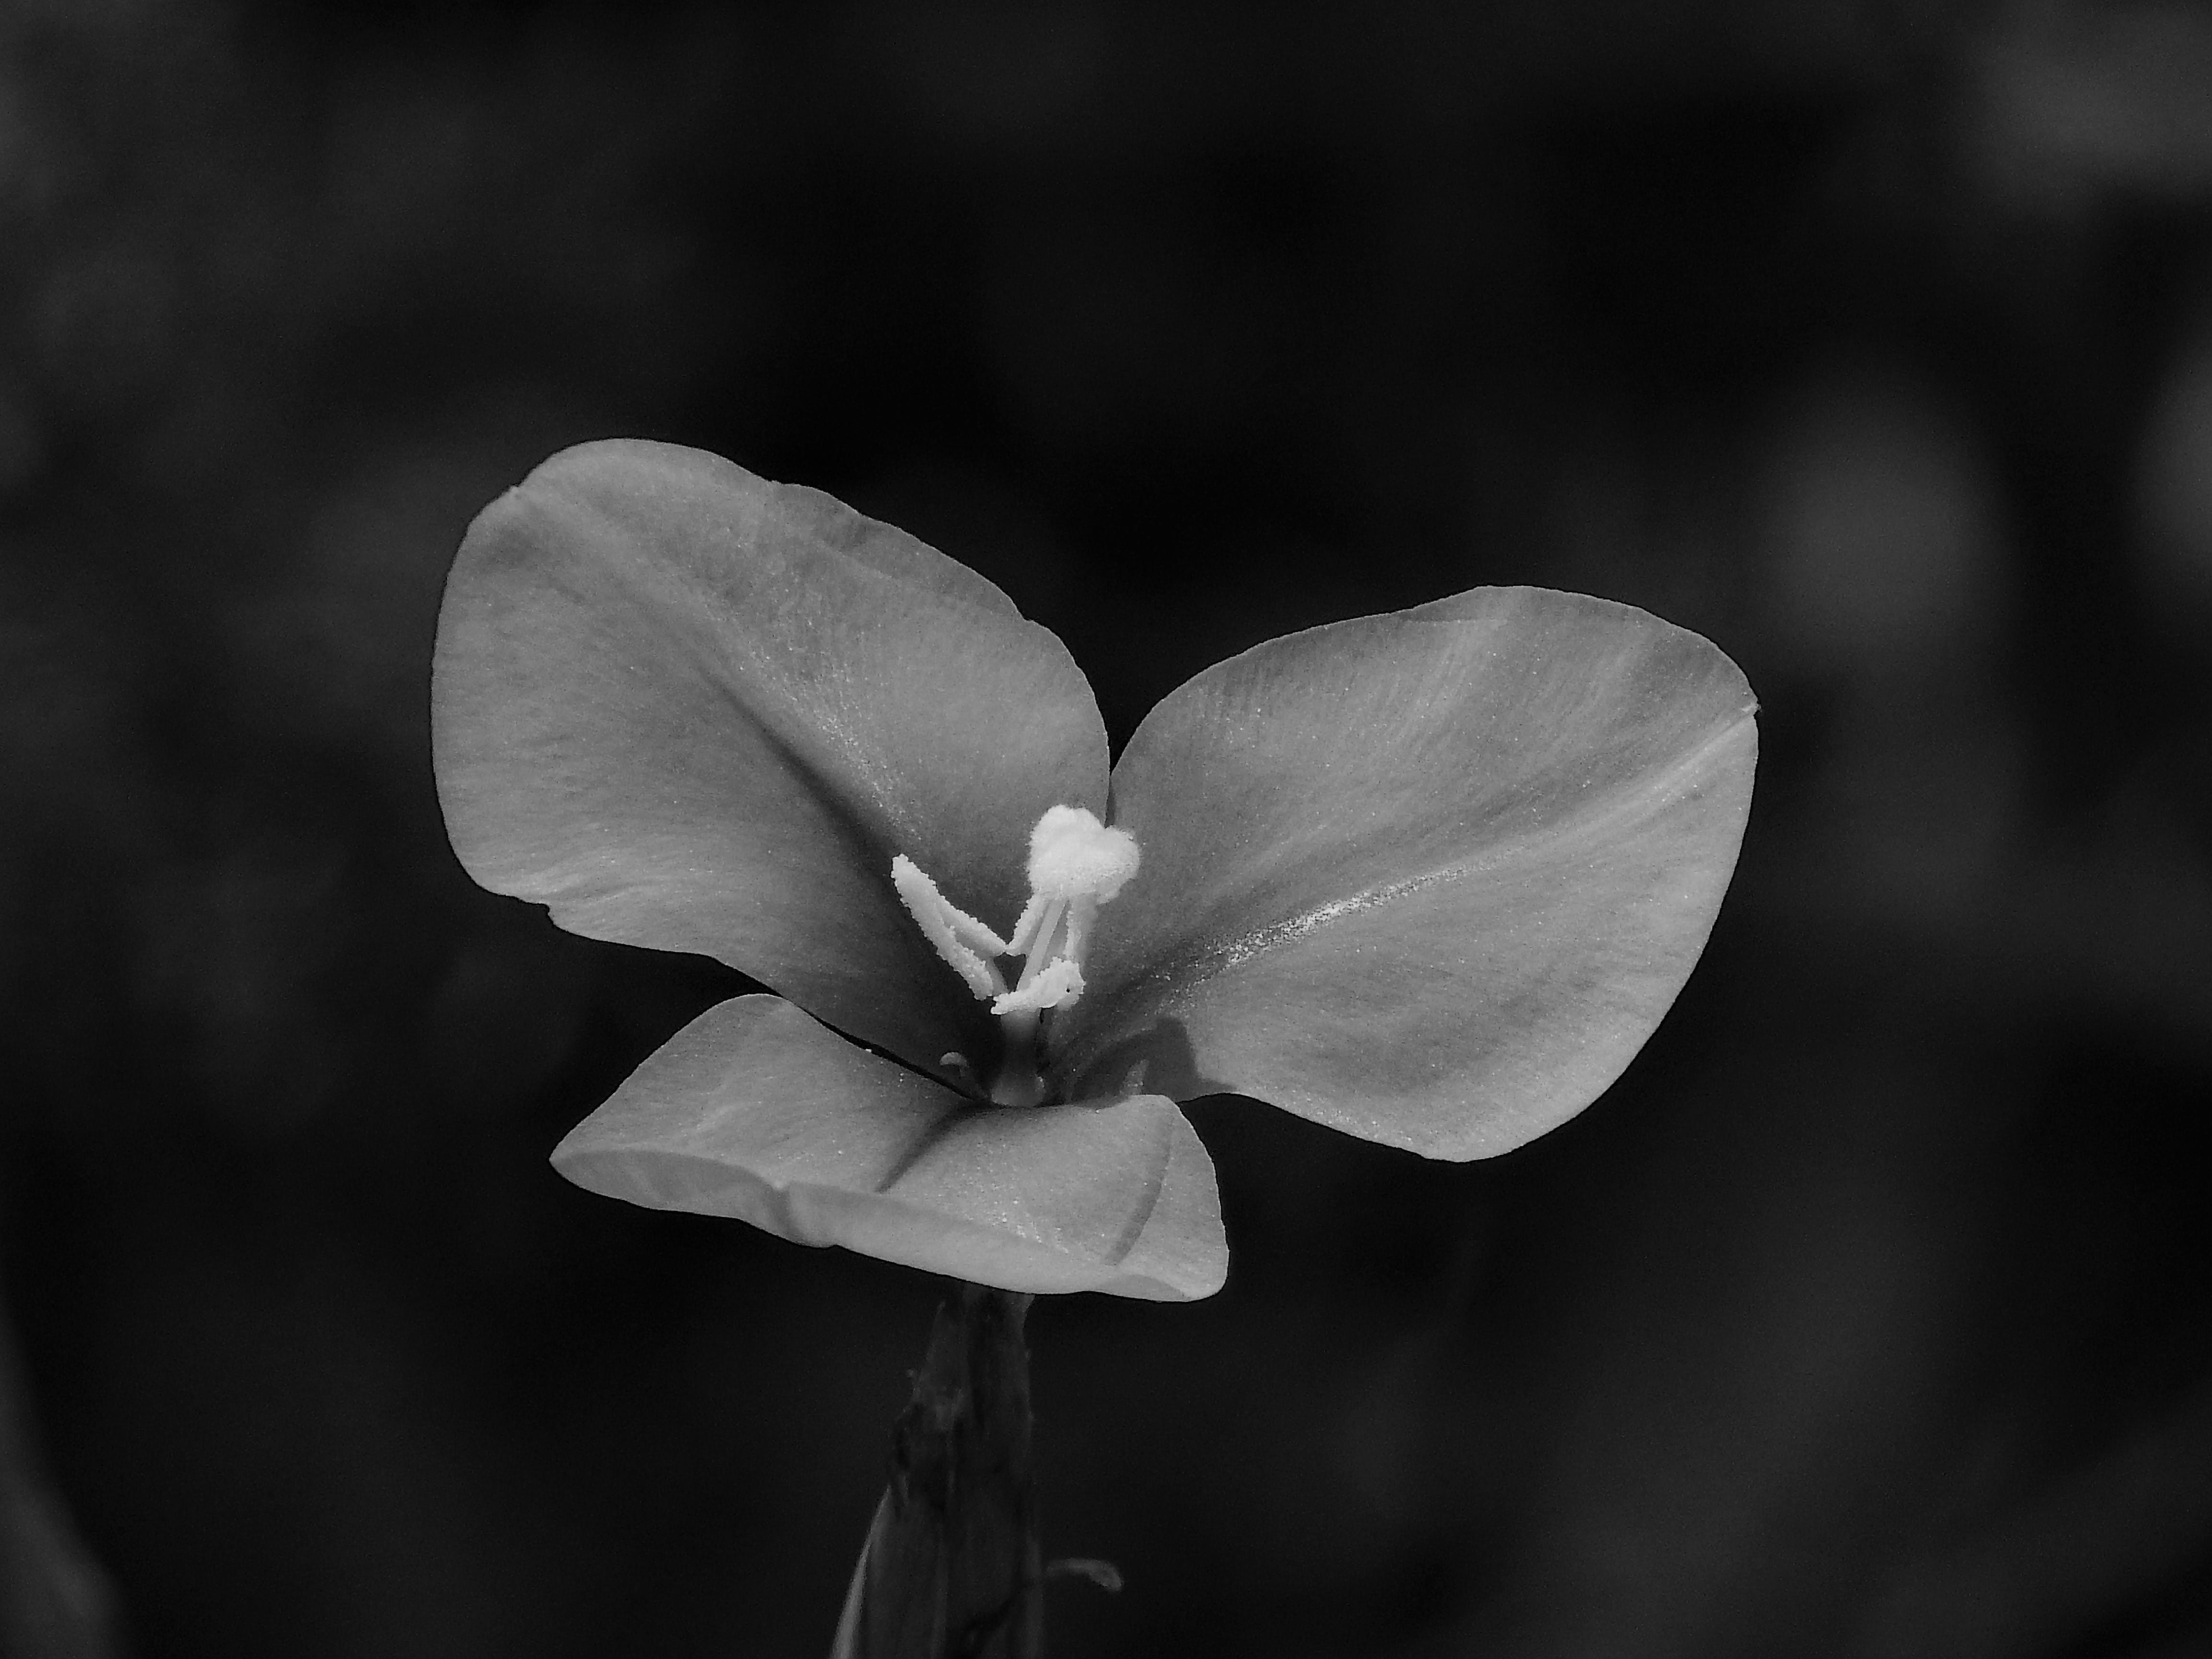 Grayscale Photography of 3-petaled Flower